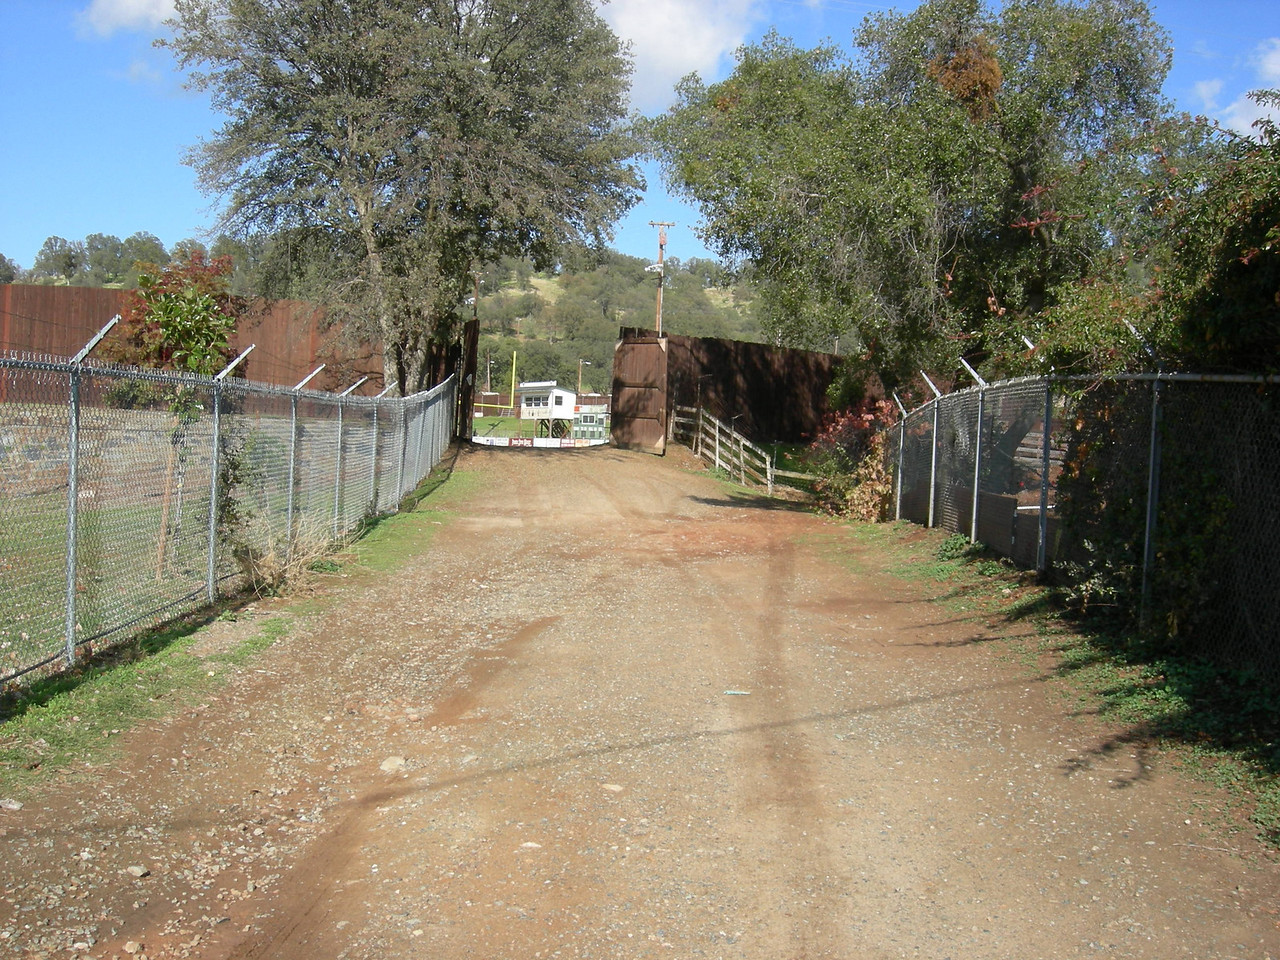 Access road to RV lot